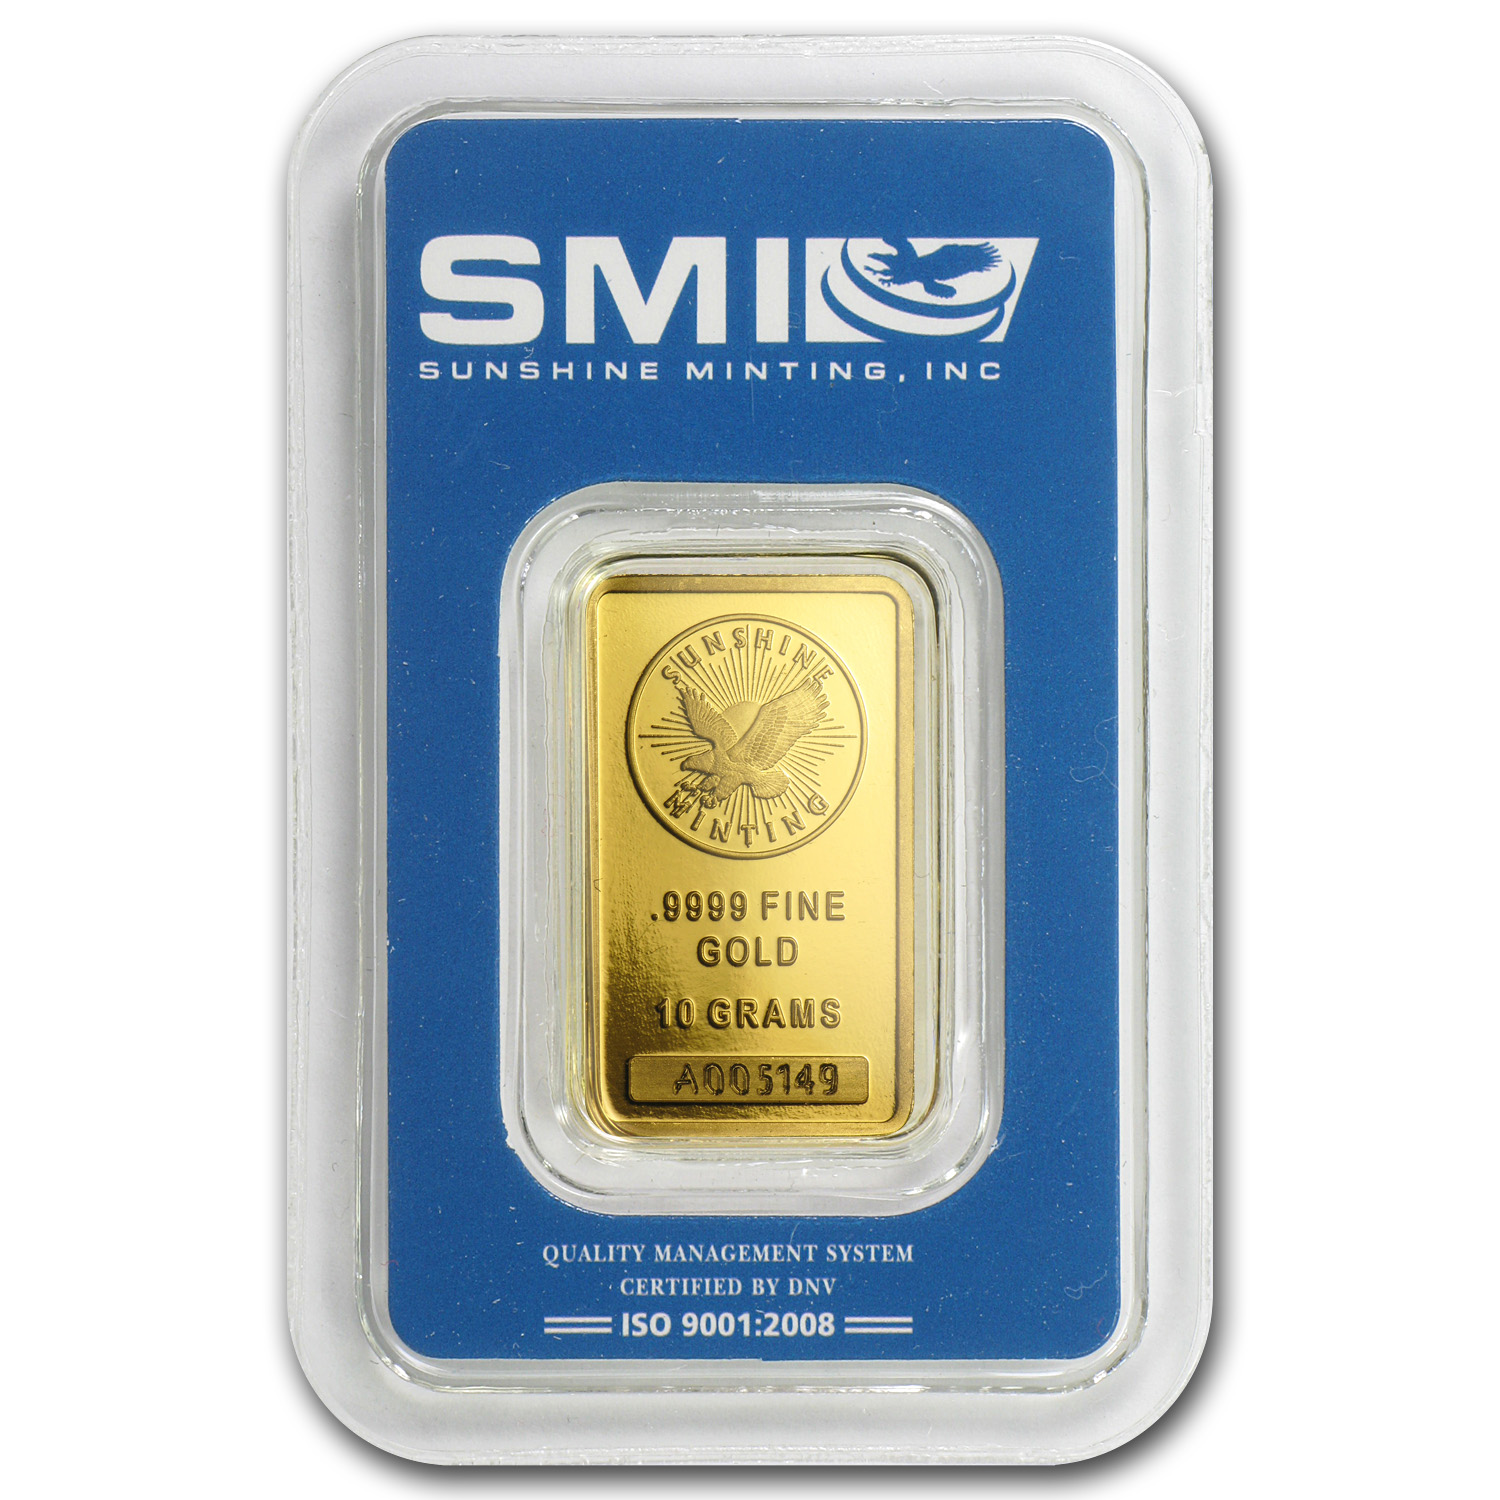 10 Gram Gold Bar - Sunshine Minting (New Design in TEP Packaging)